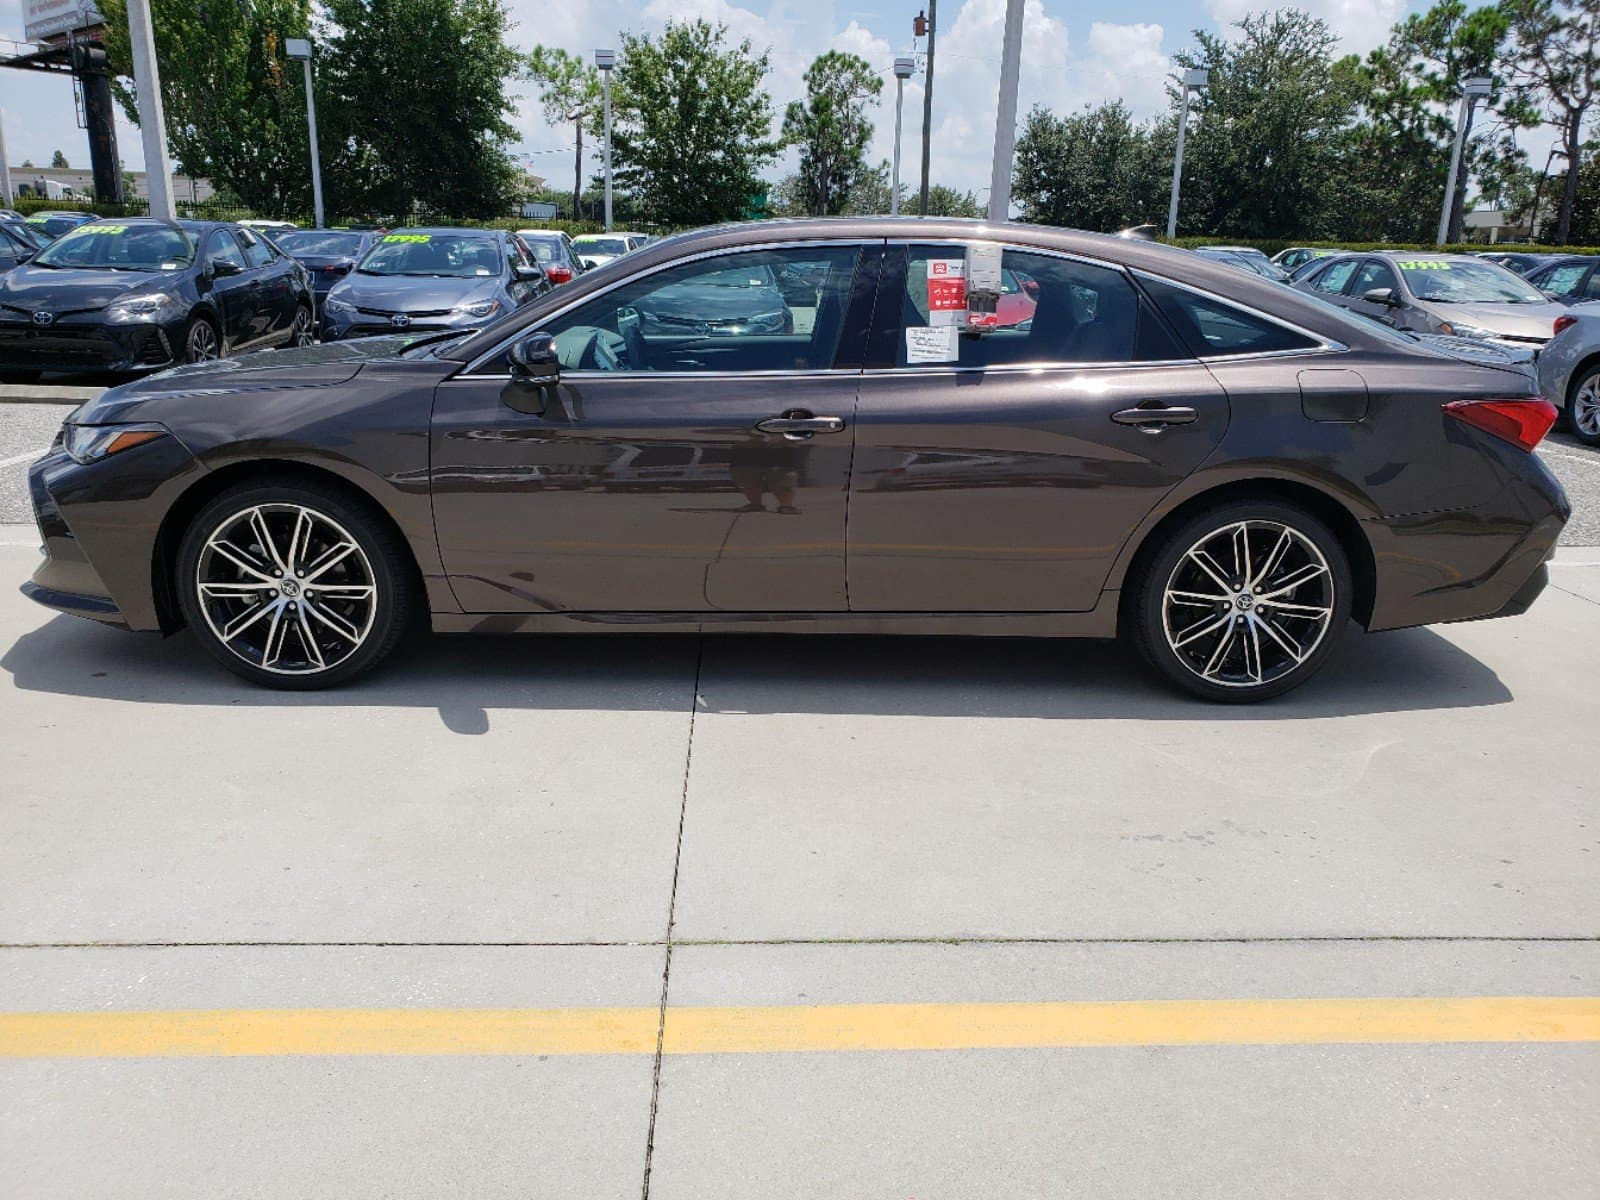 Test drive the new 2019 Orlando Toyota Avalon.